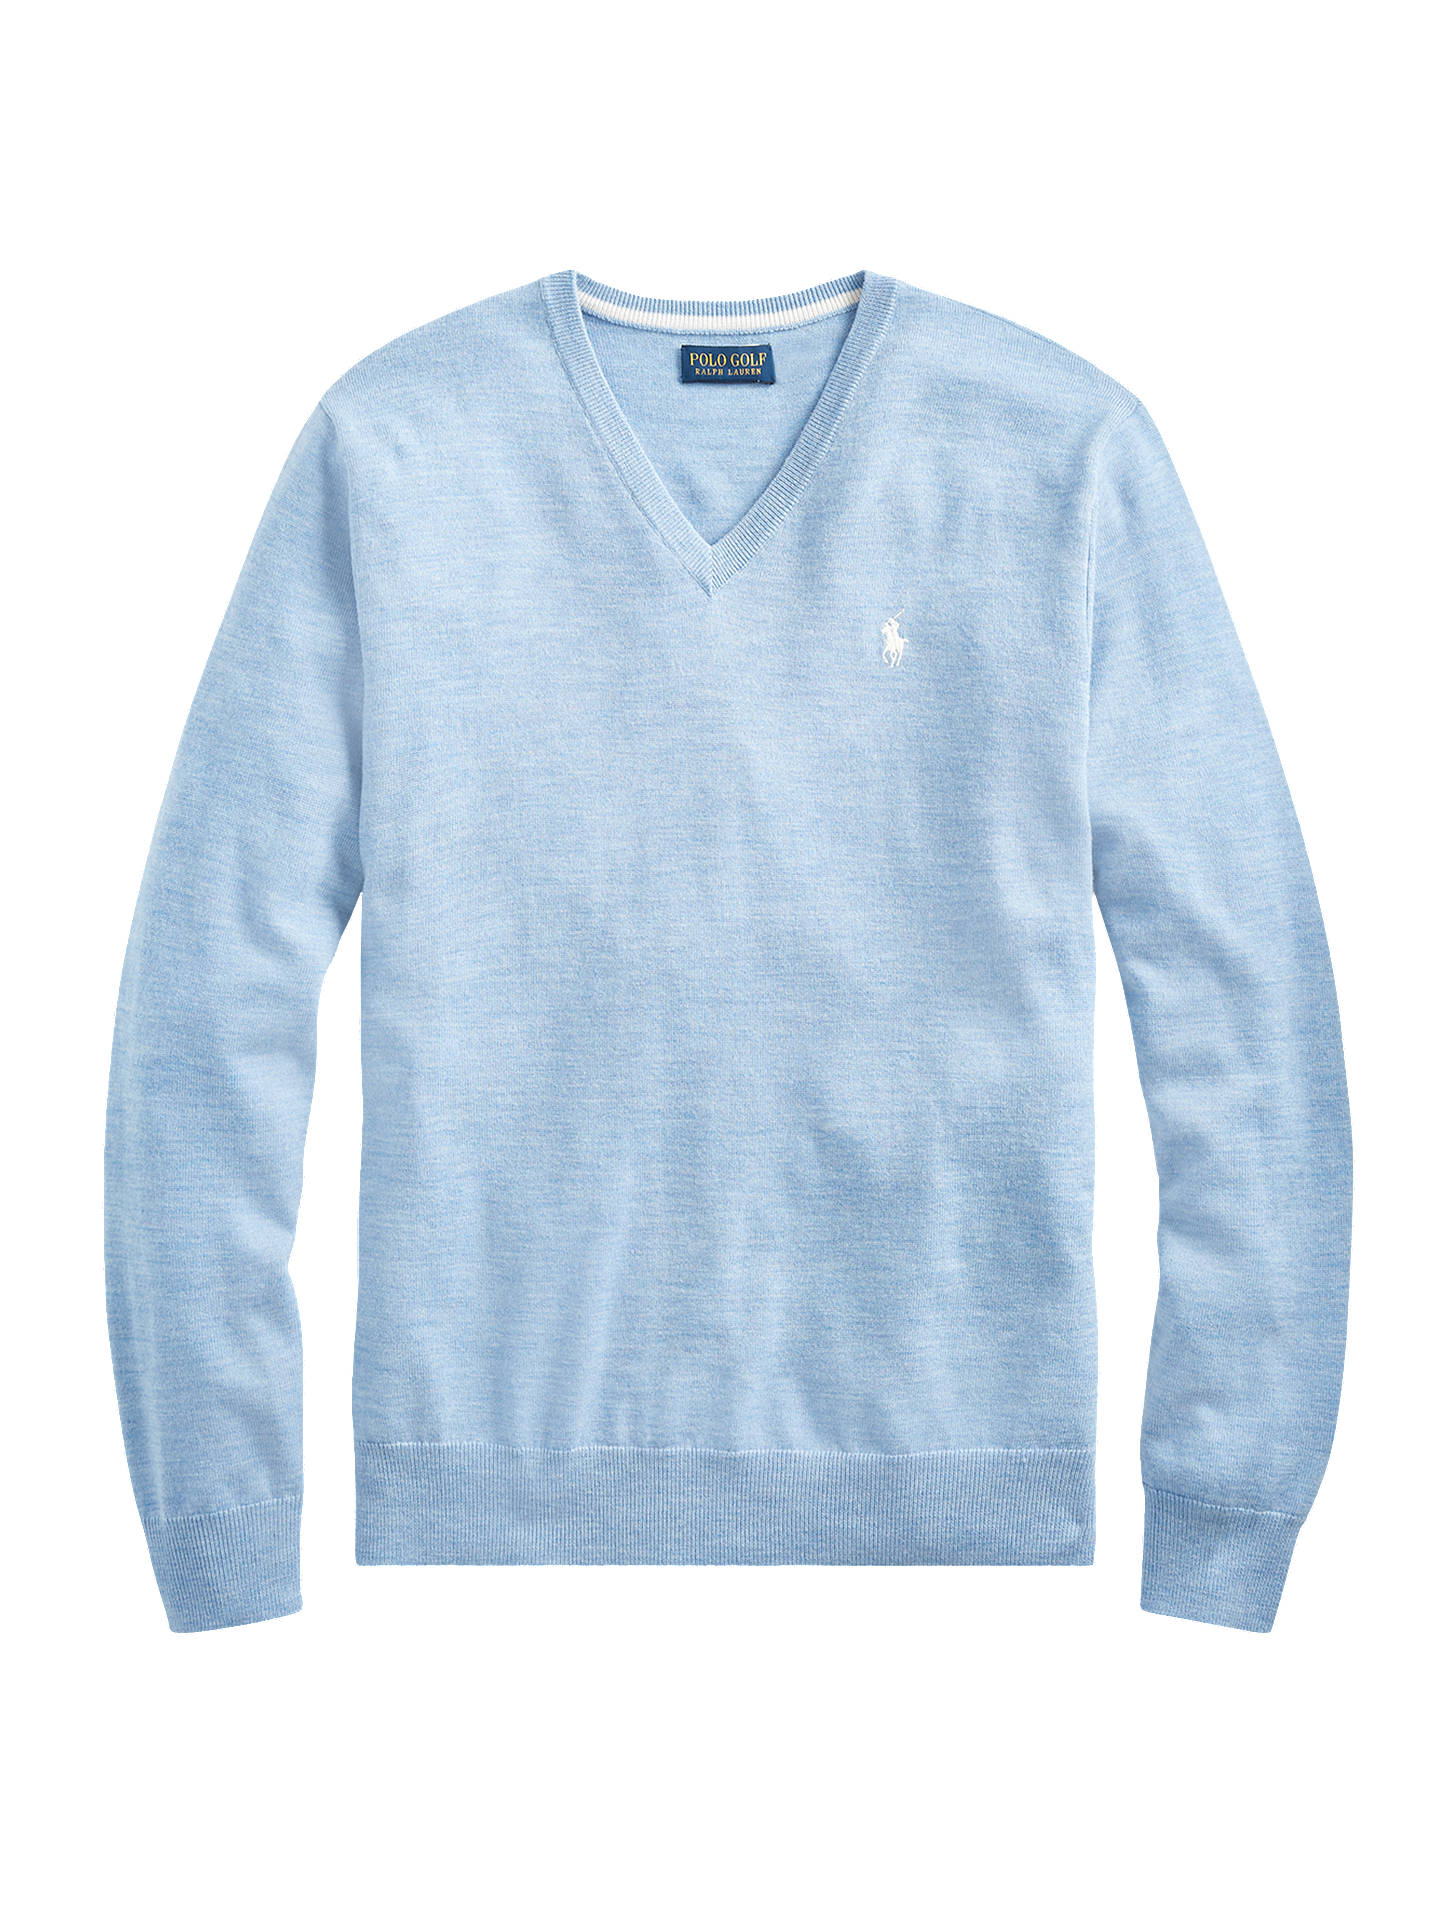 BuyPolo Golf Wool V-Neck Knit Jumper, Cobalt Heather, L Online at johnlewis.com